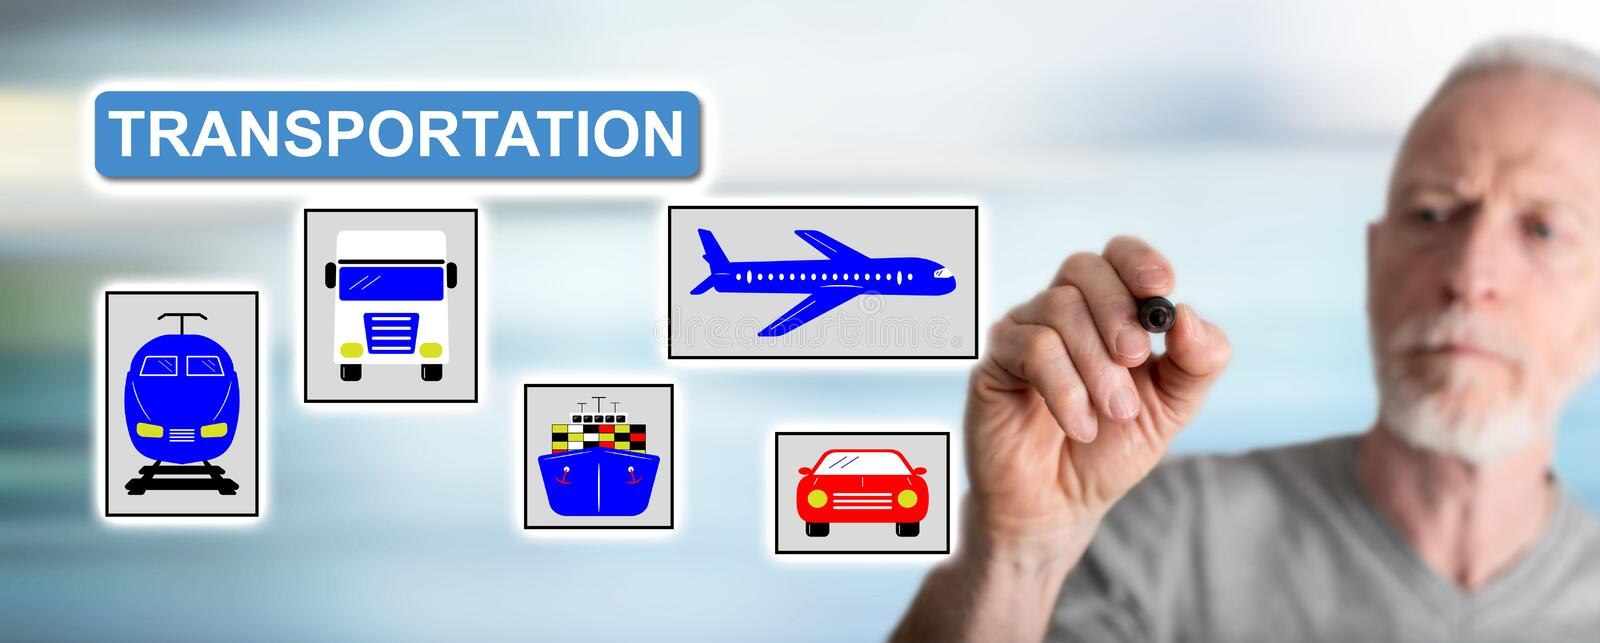 Man drawing transportation concept stock images